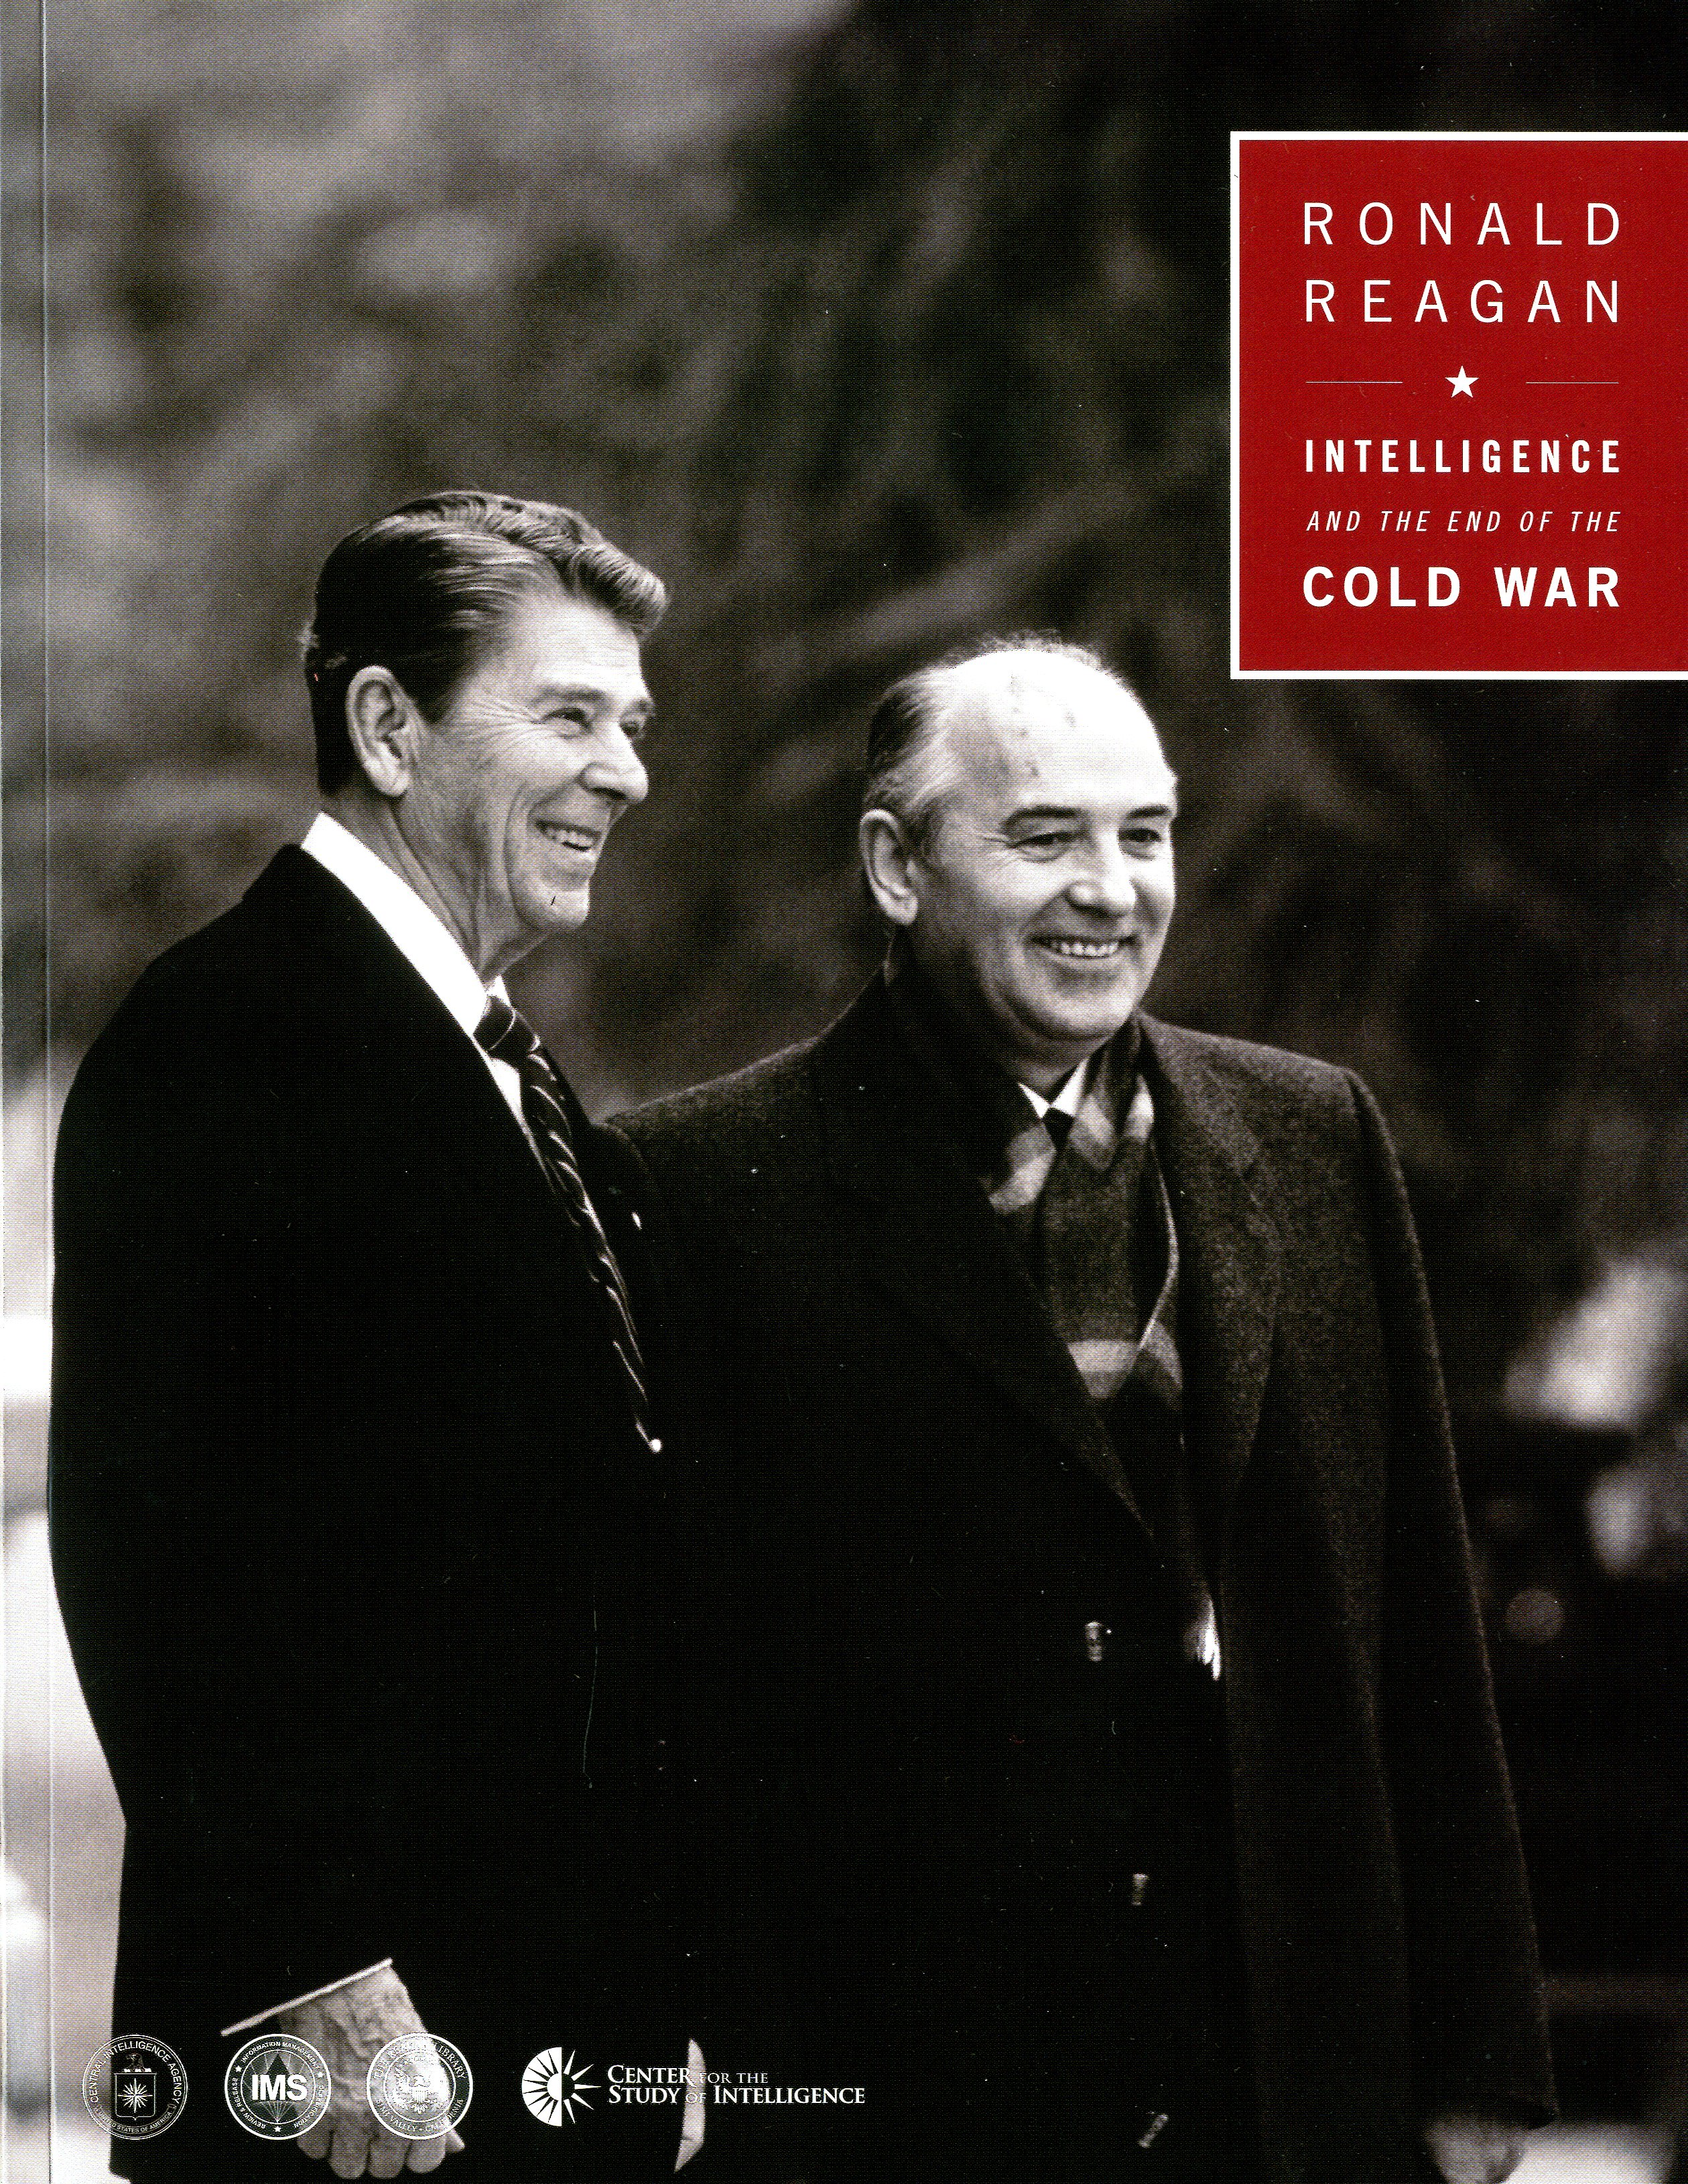 did ronald reagan end the cold Ending the cold war at long last, battering inflation and unemployment,  with  the centennial of ronald reagan's birth this feb  he was relentless in pushing  his strategic defense initiative and gave aid to rebels battling.